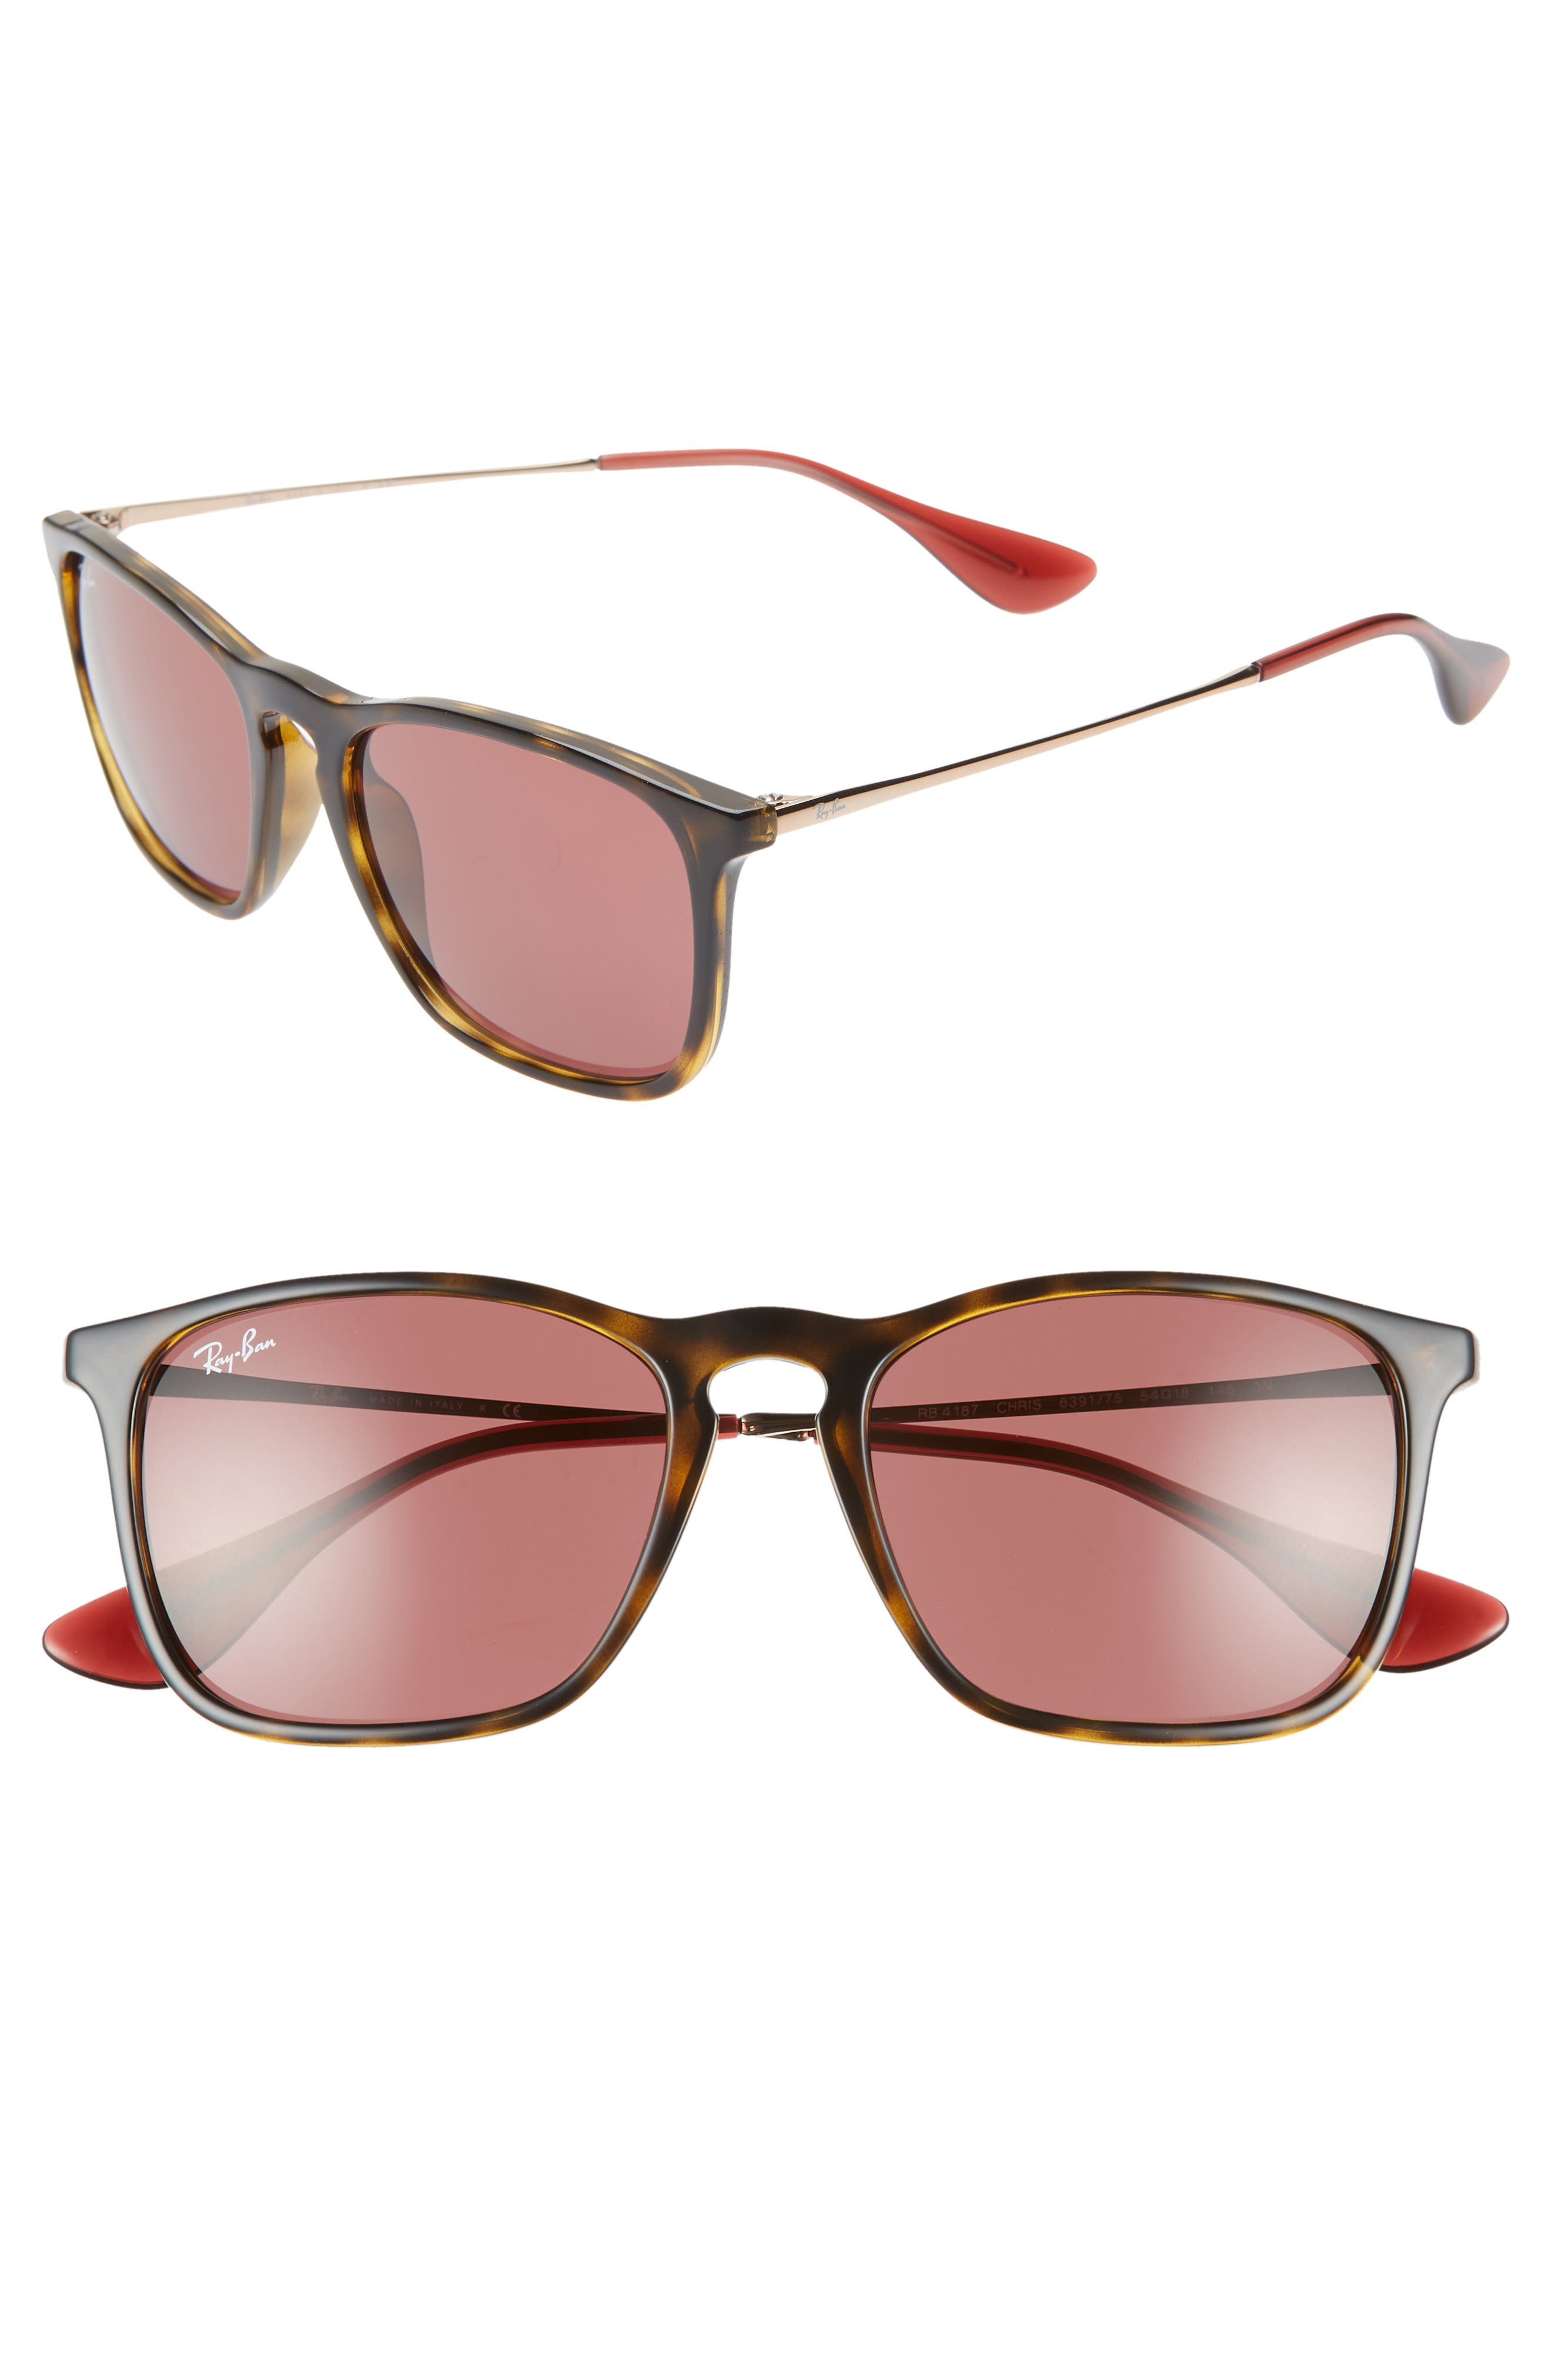 Ray-Ban Youngster 5m Square Keyhole Sunglasses - Havana/ Violet Solid